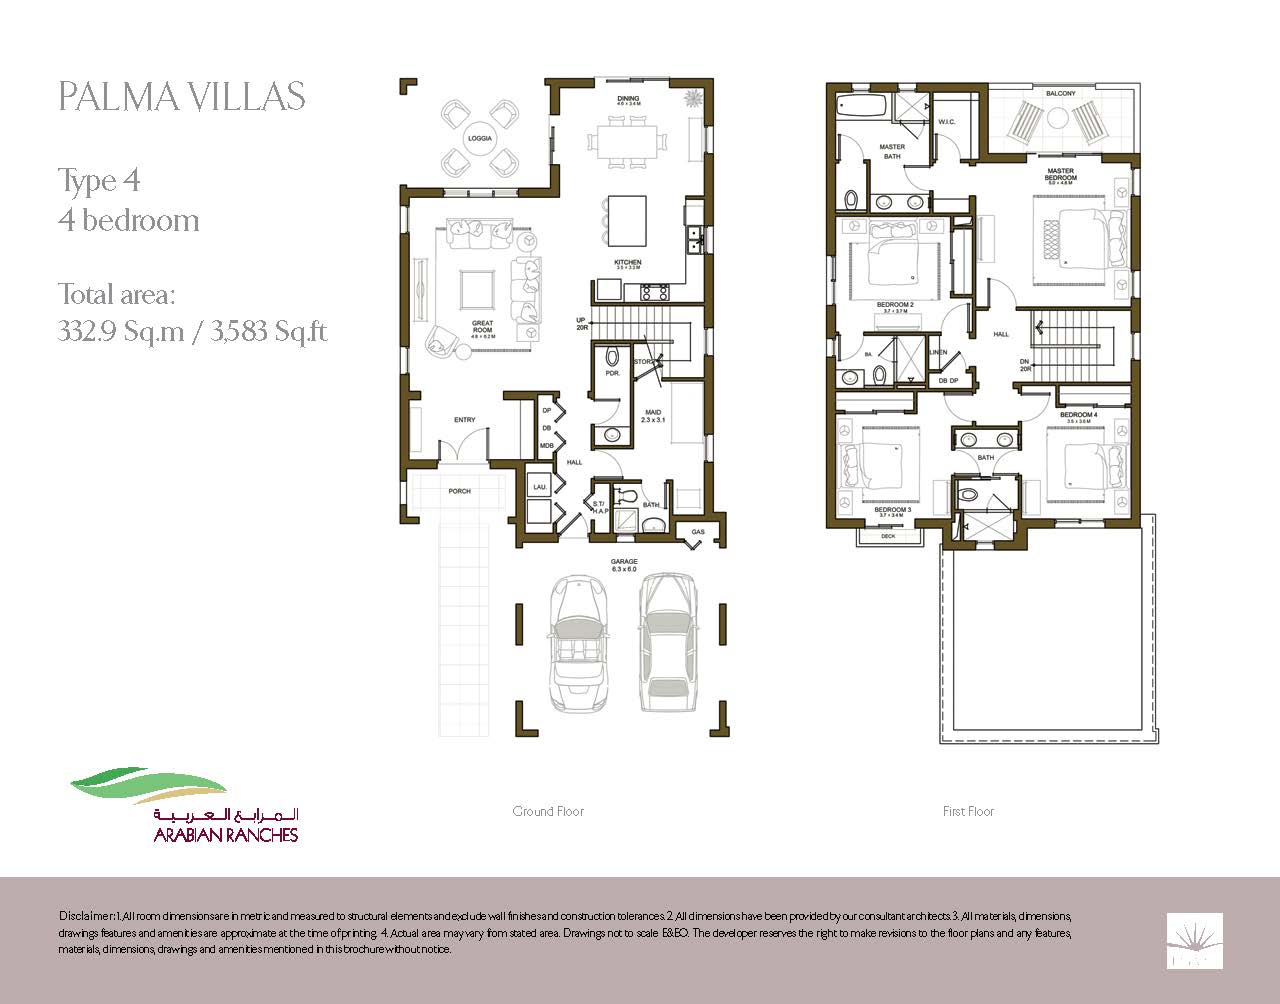 Palma villa floor plans arabian ranches for 4 bedroom villa plans